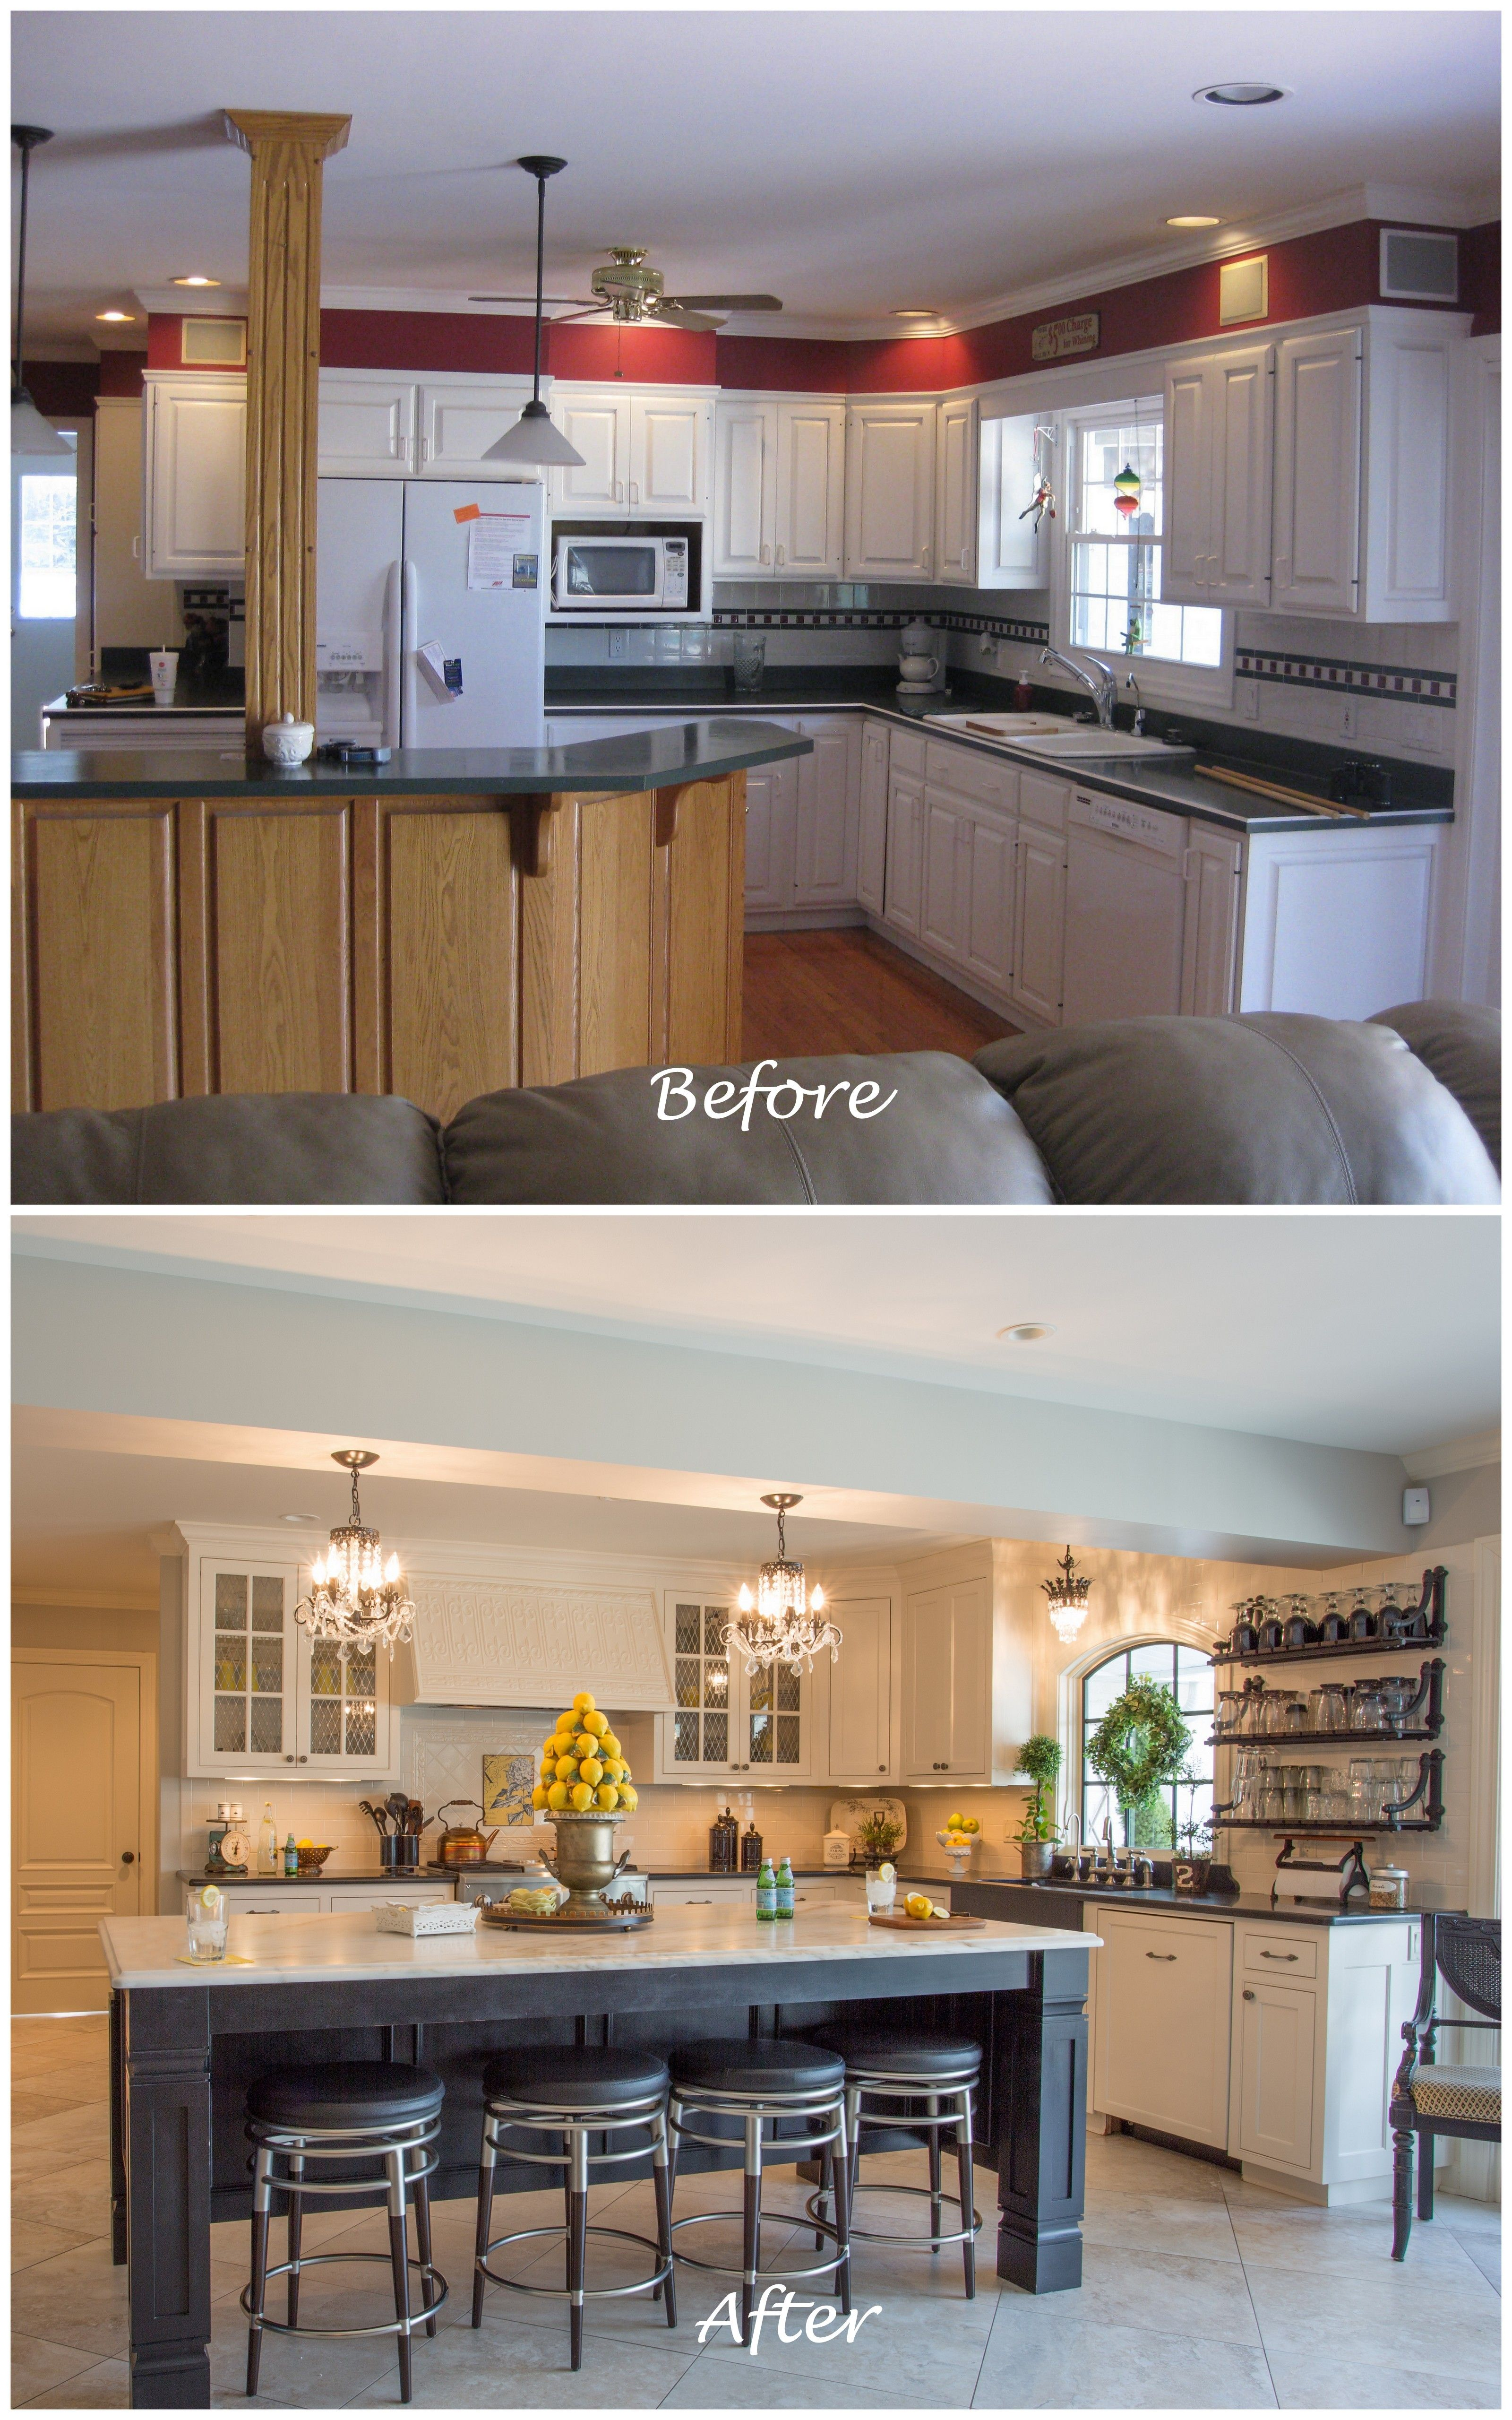 Kitchen Kitchen Remodeling Projects Kitchen Remodel Small Renovation